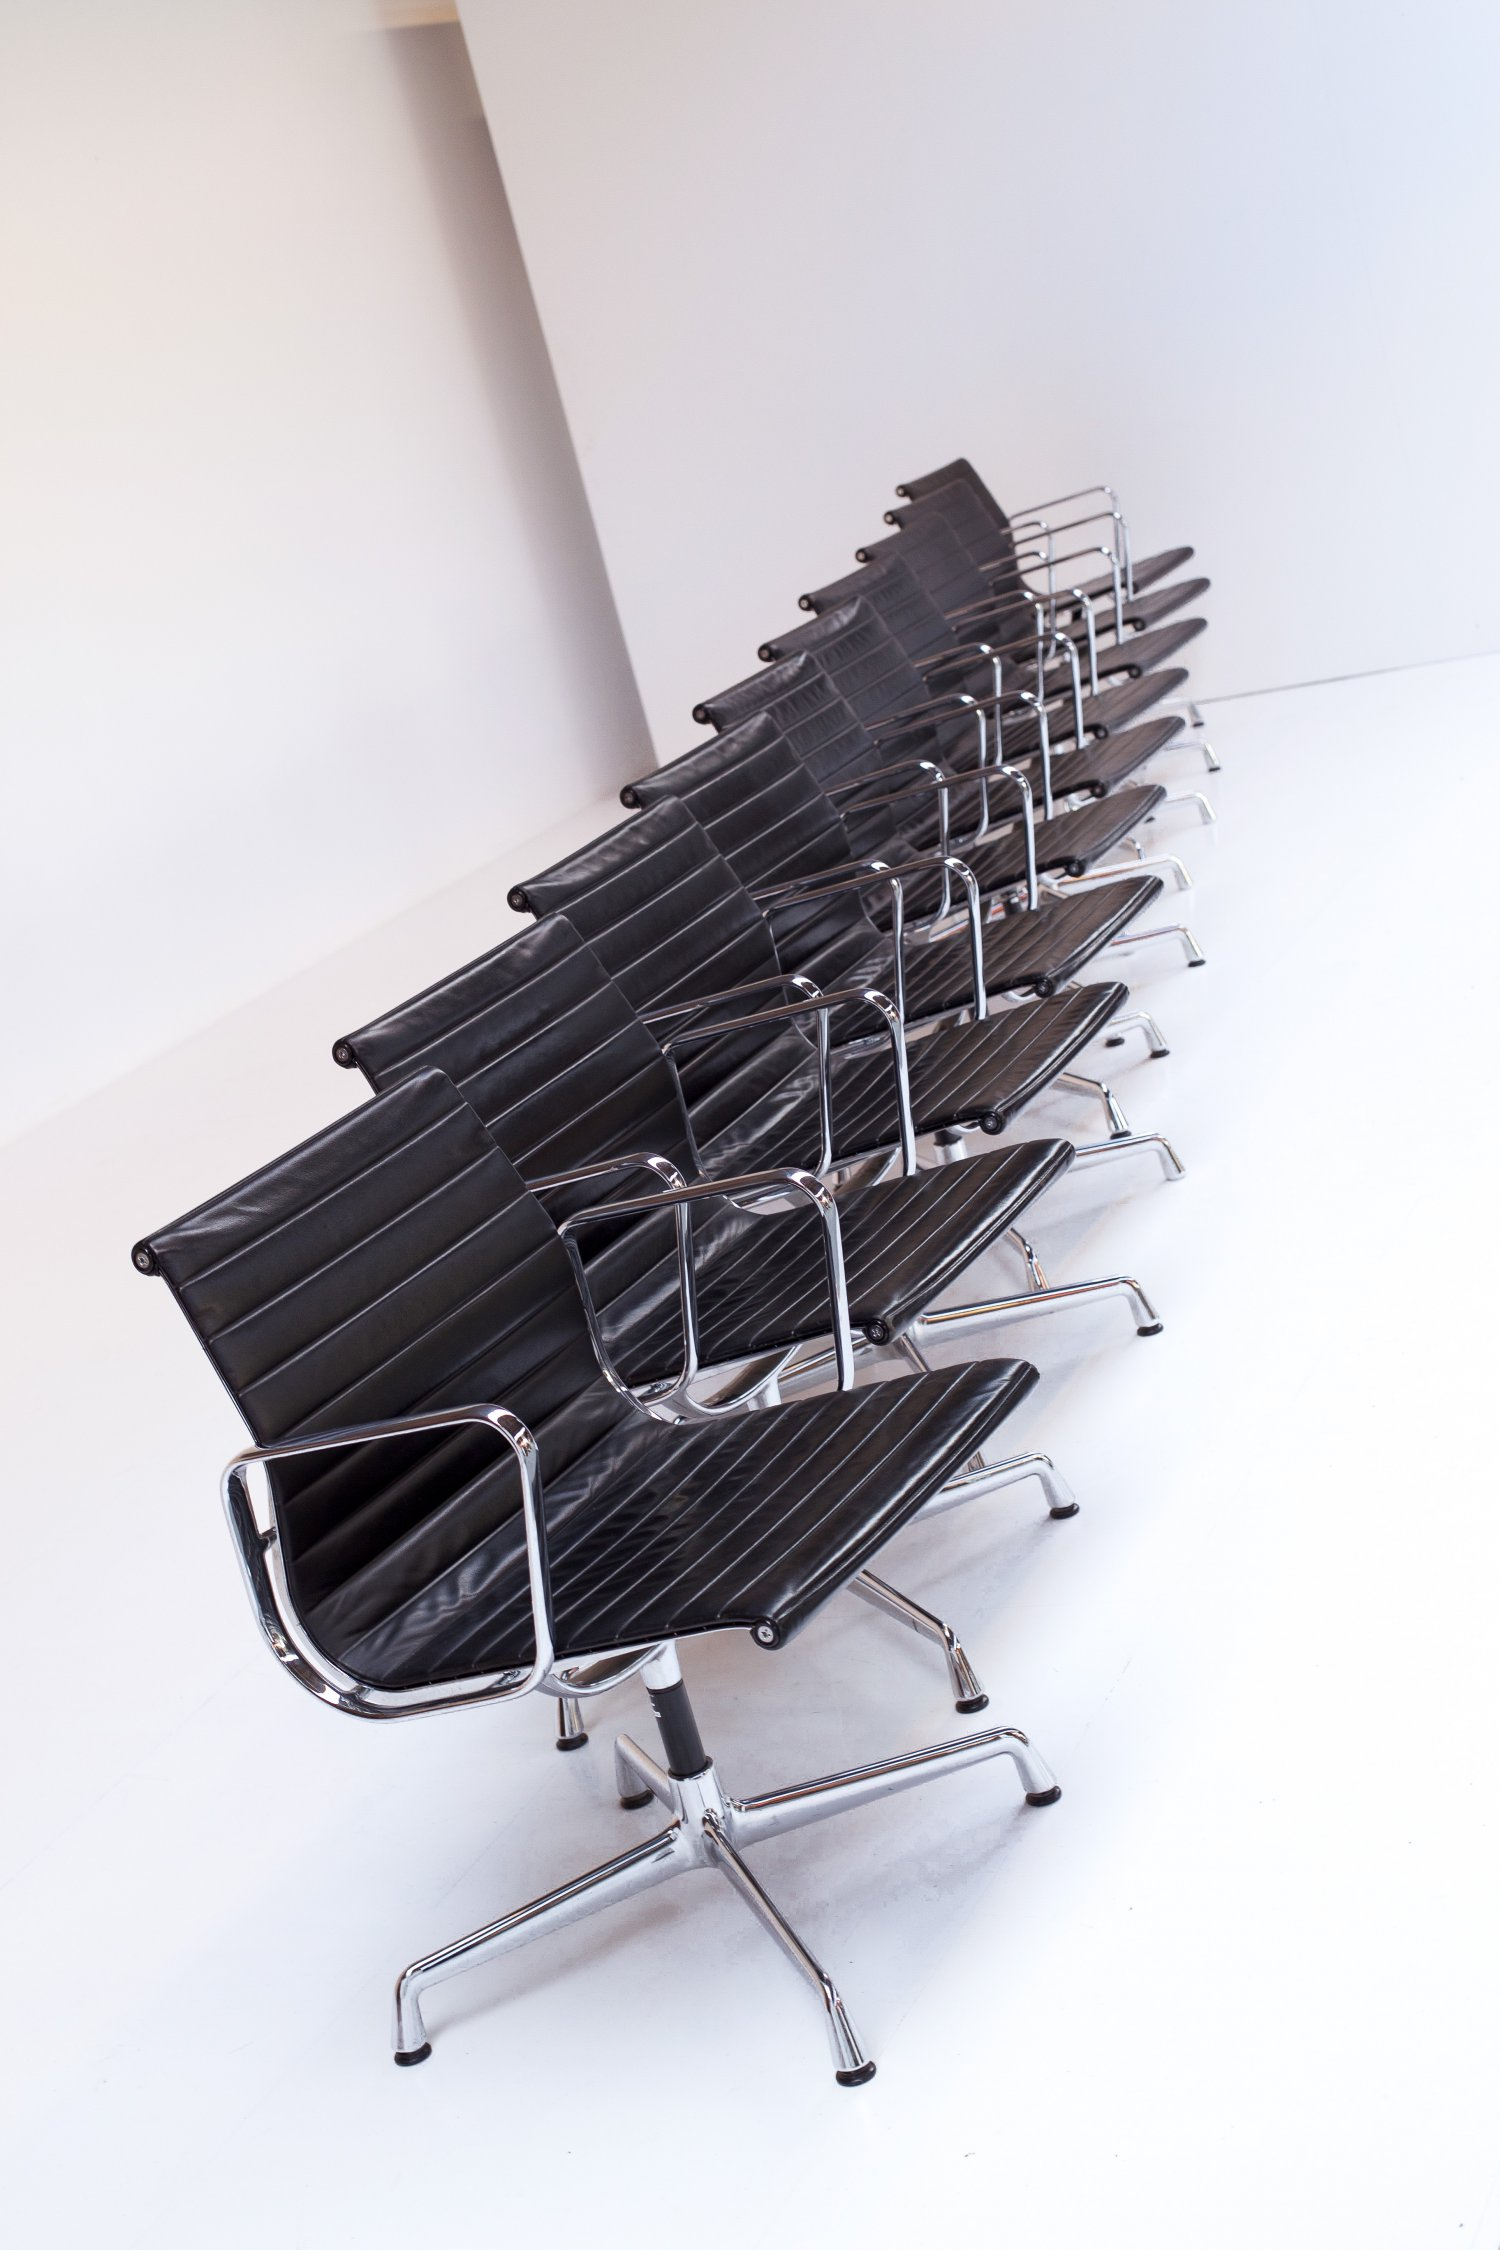 Alu chairs by Eames